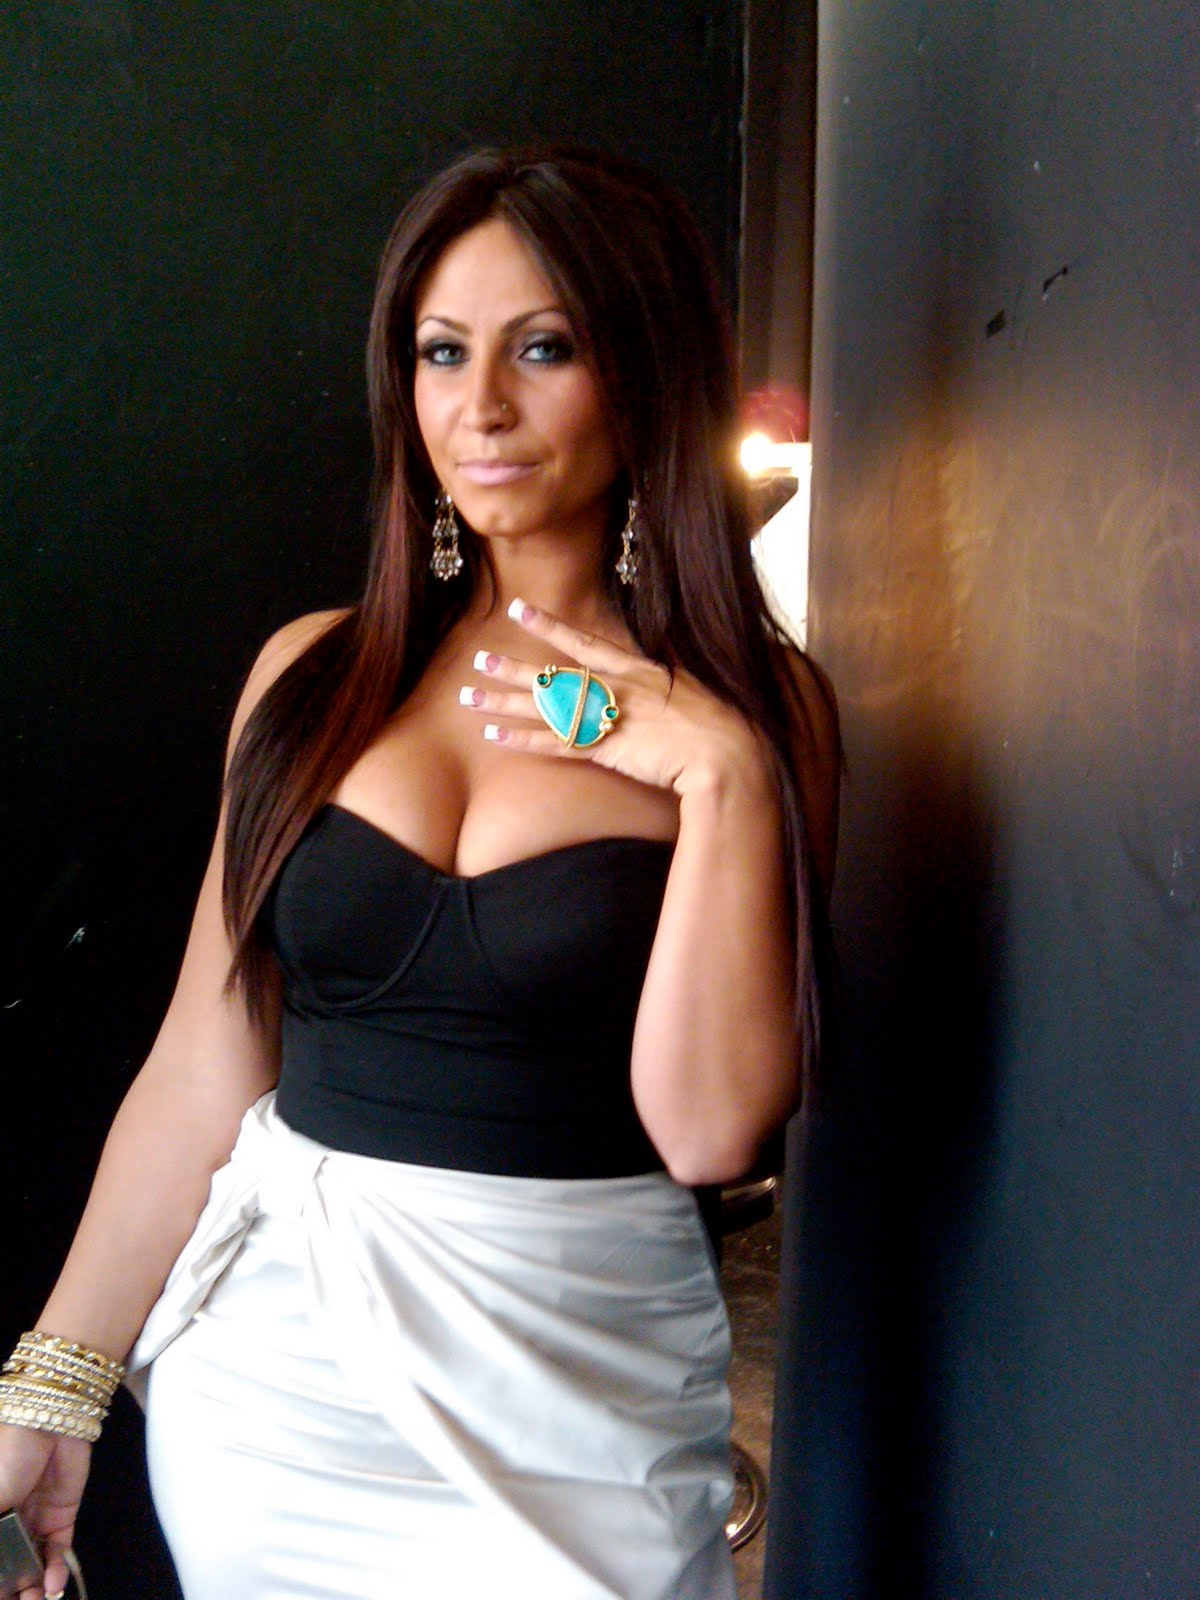 Mzlababay: You Don't Have To Cry: Tracy DiMarco Your Too